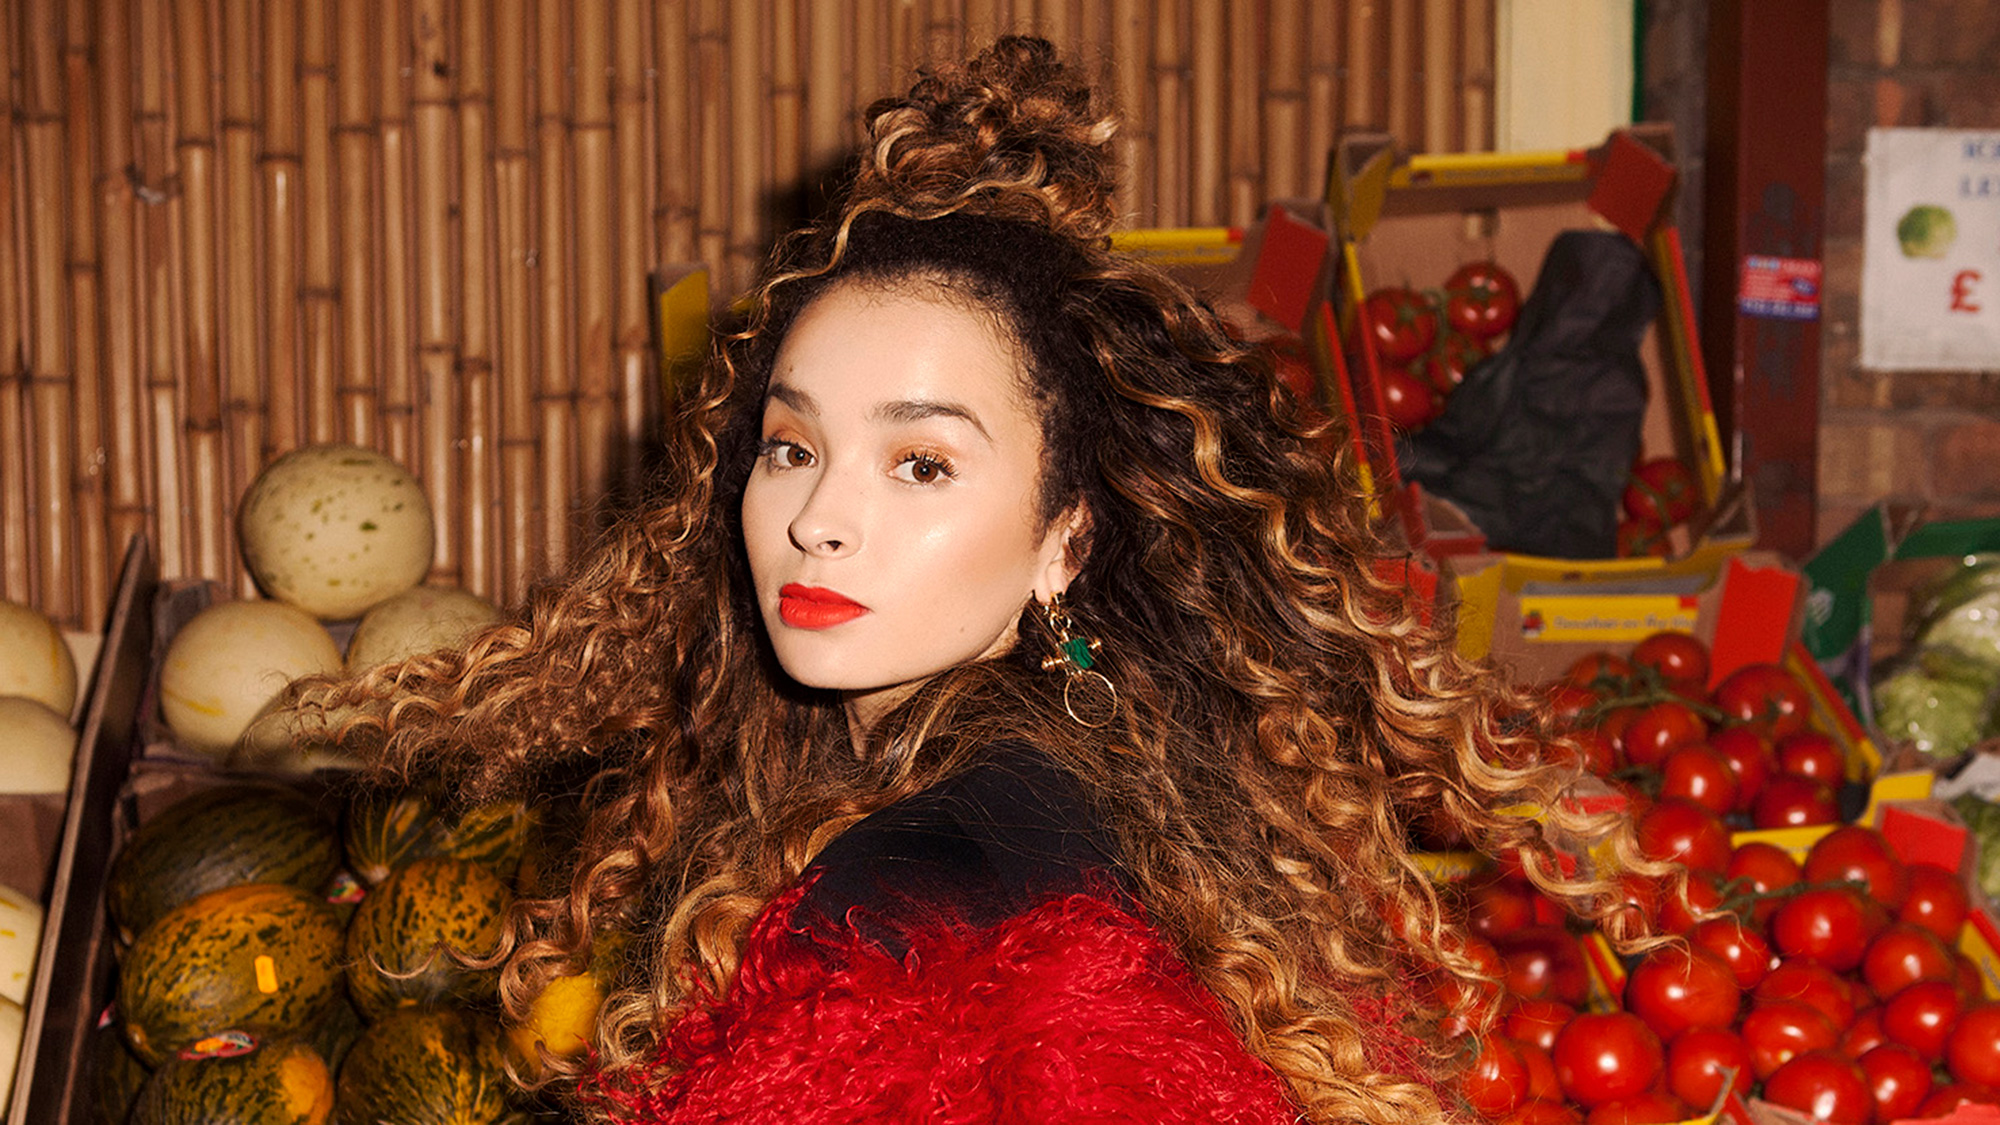 Celebrity Ella Eyre naked (44 foto and video), Sexy, Cleavage, Boobs, butt 2019